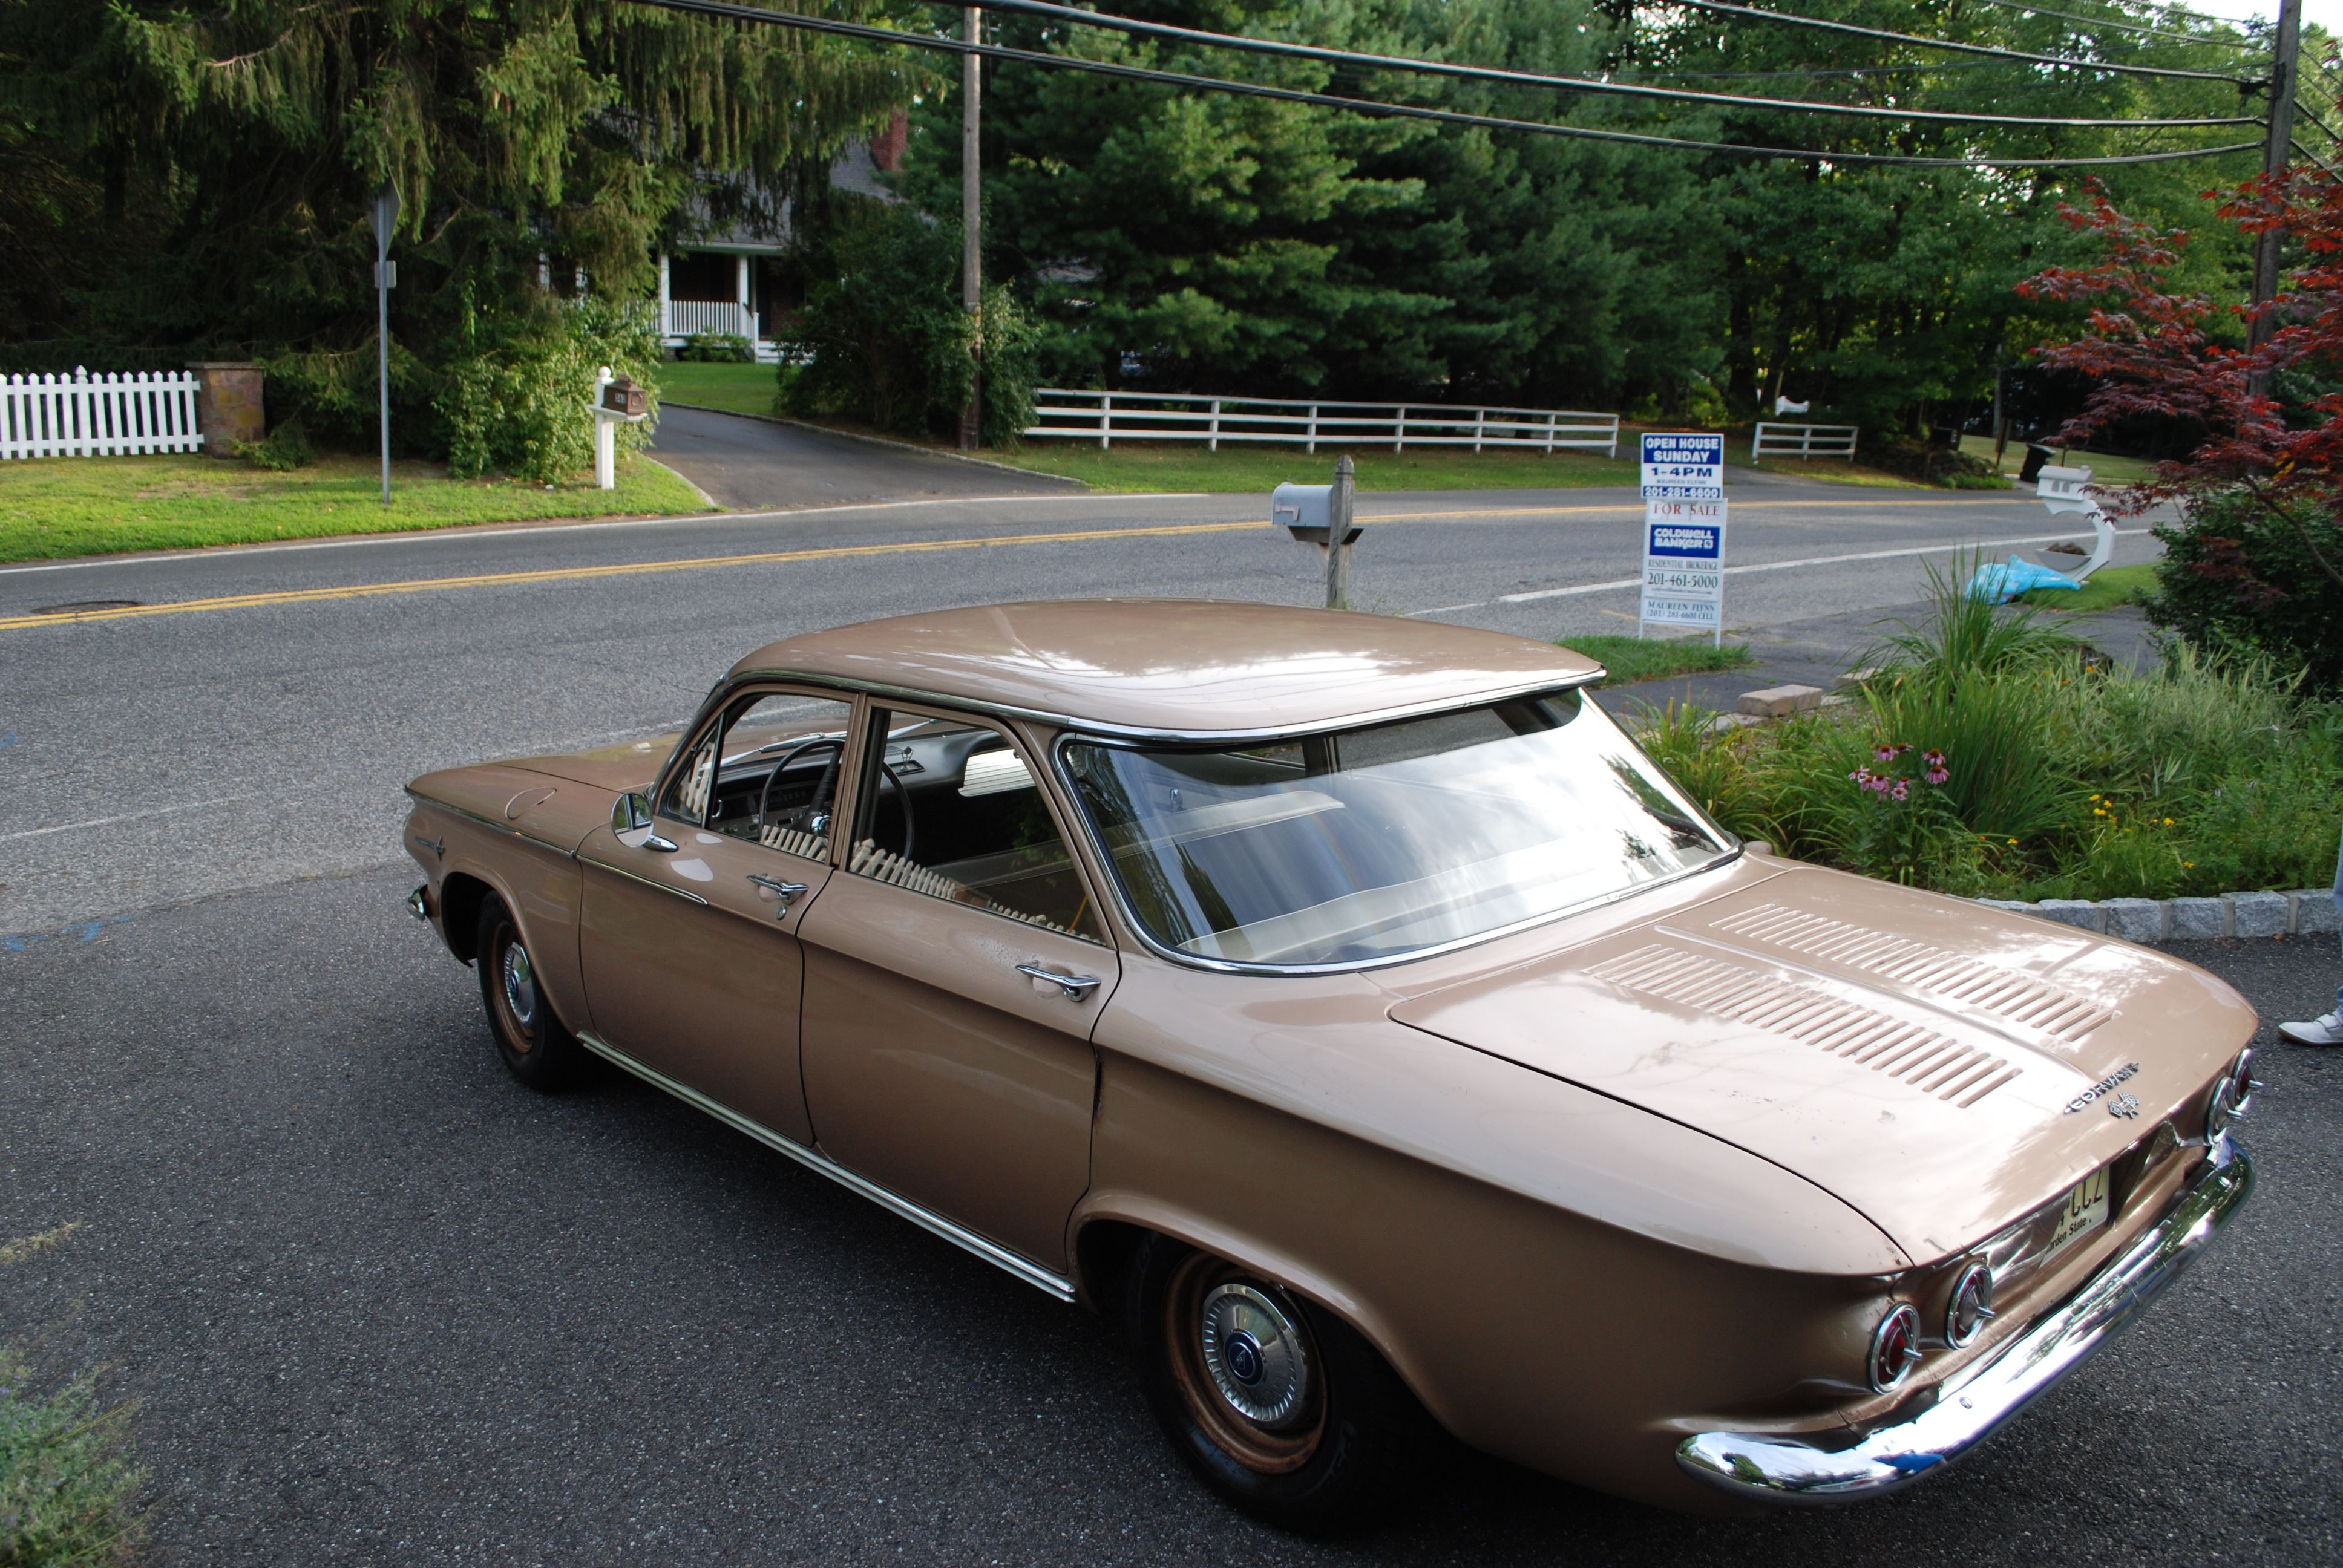 63 Chevy Corvair Road Ready Chevy Corvair Chevrolet Corvair Chevy